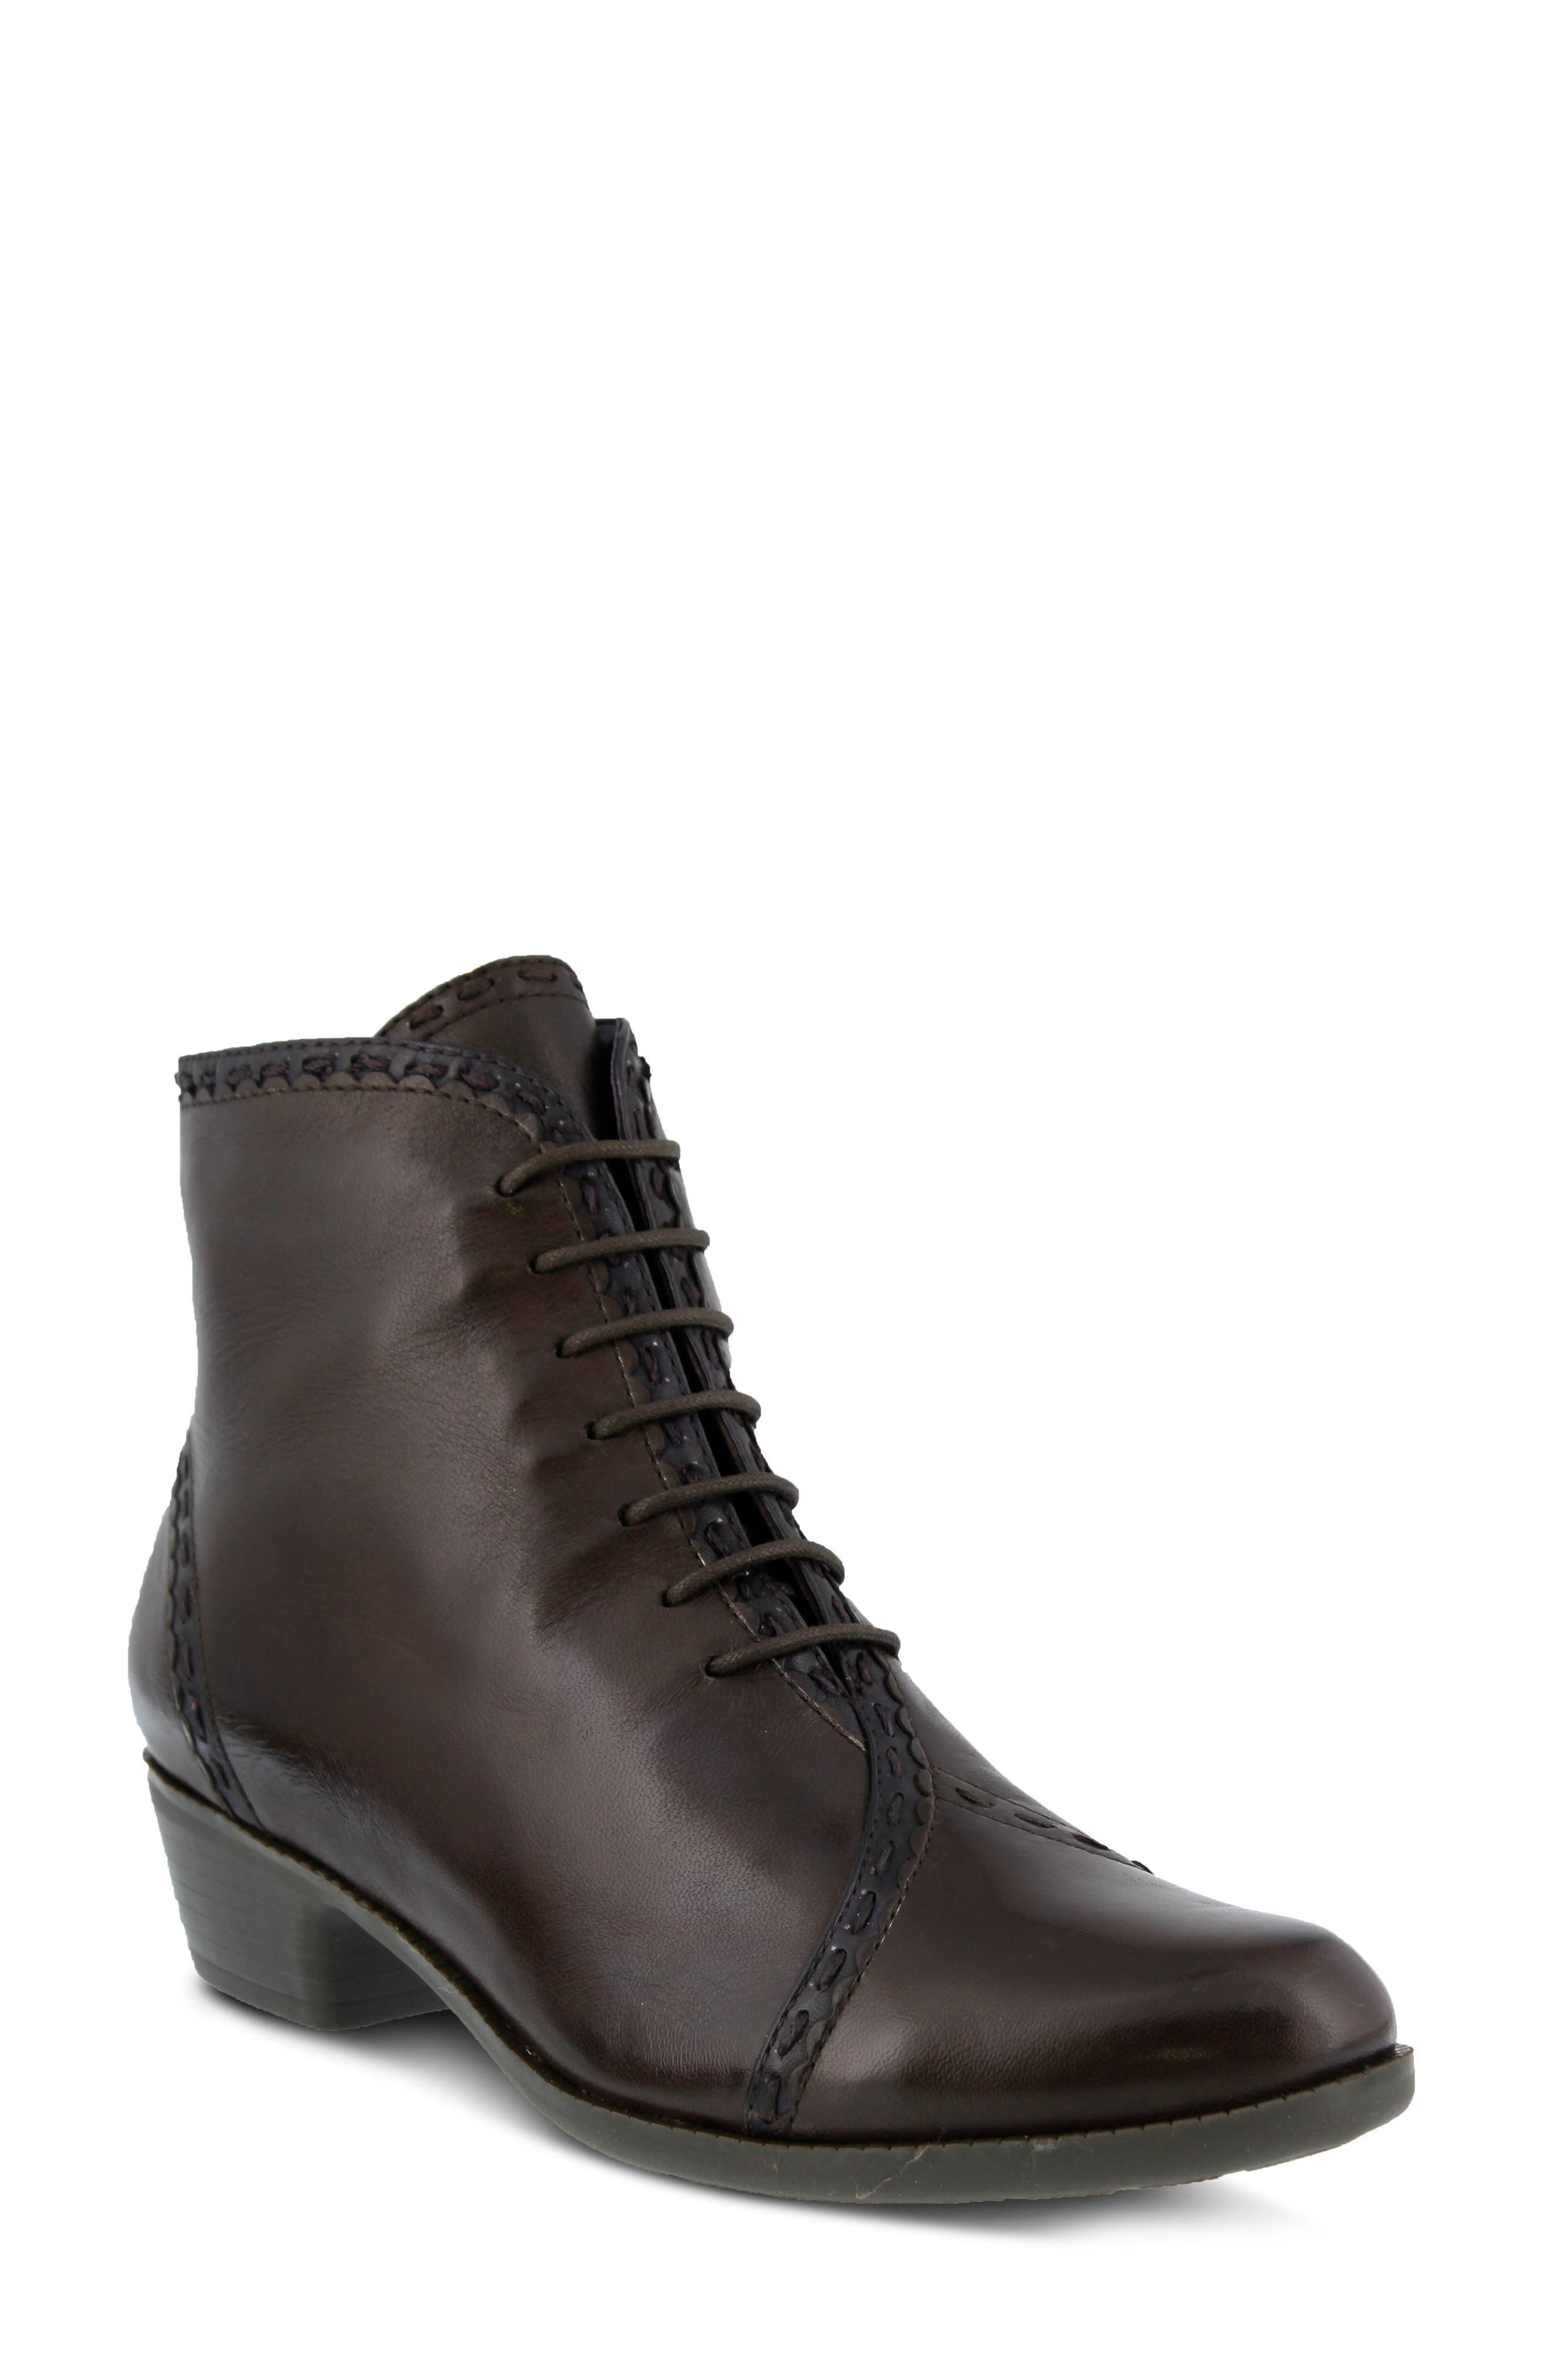 Spring Step Jaru Lace-Up Bootie, Brown